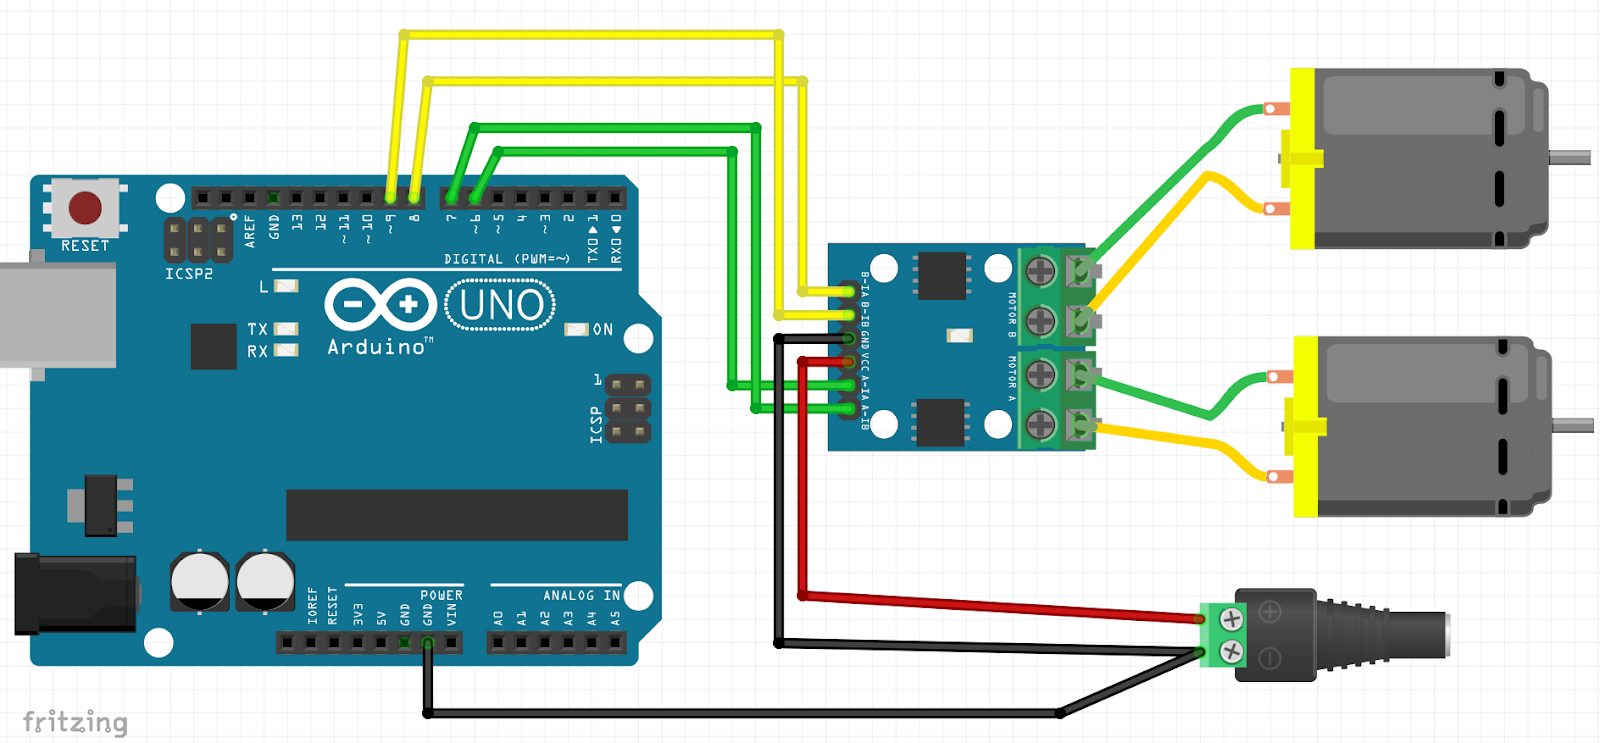 How to control DC Motor using HG7881/L9110 with Arduino